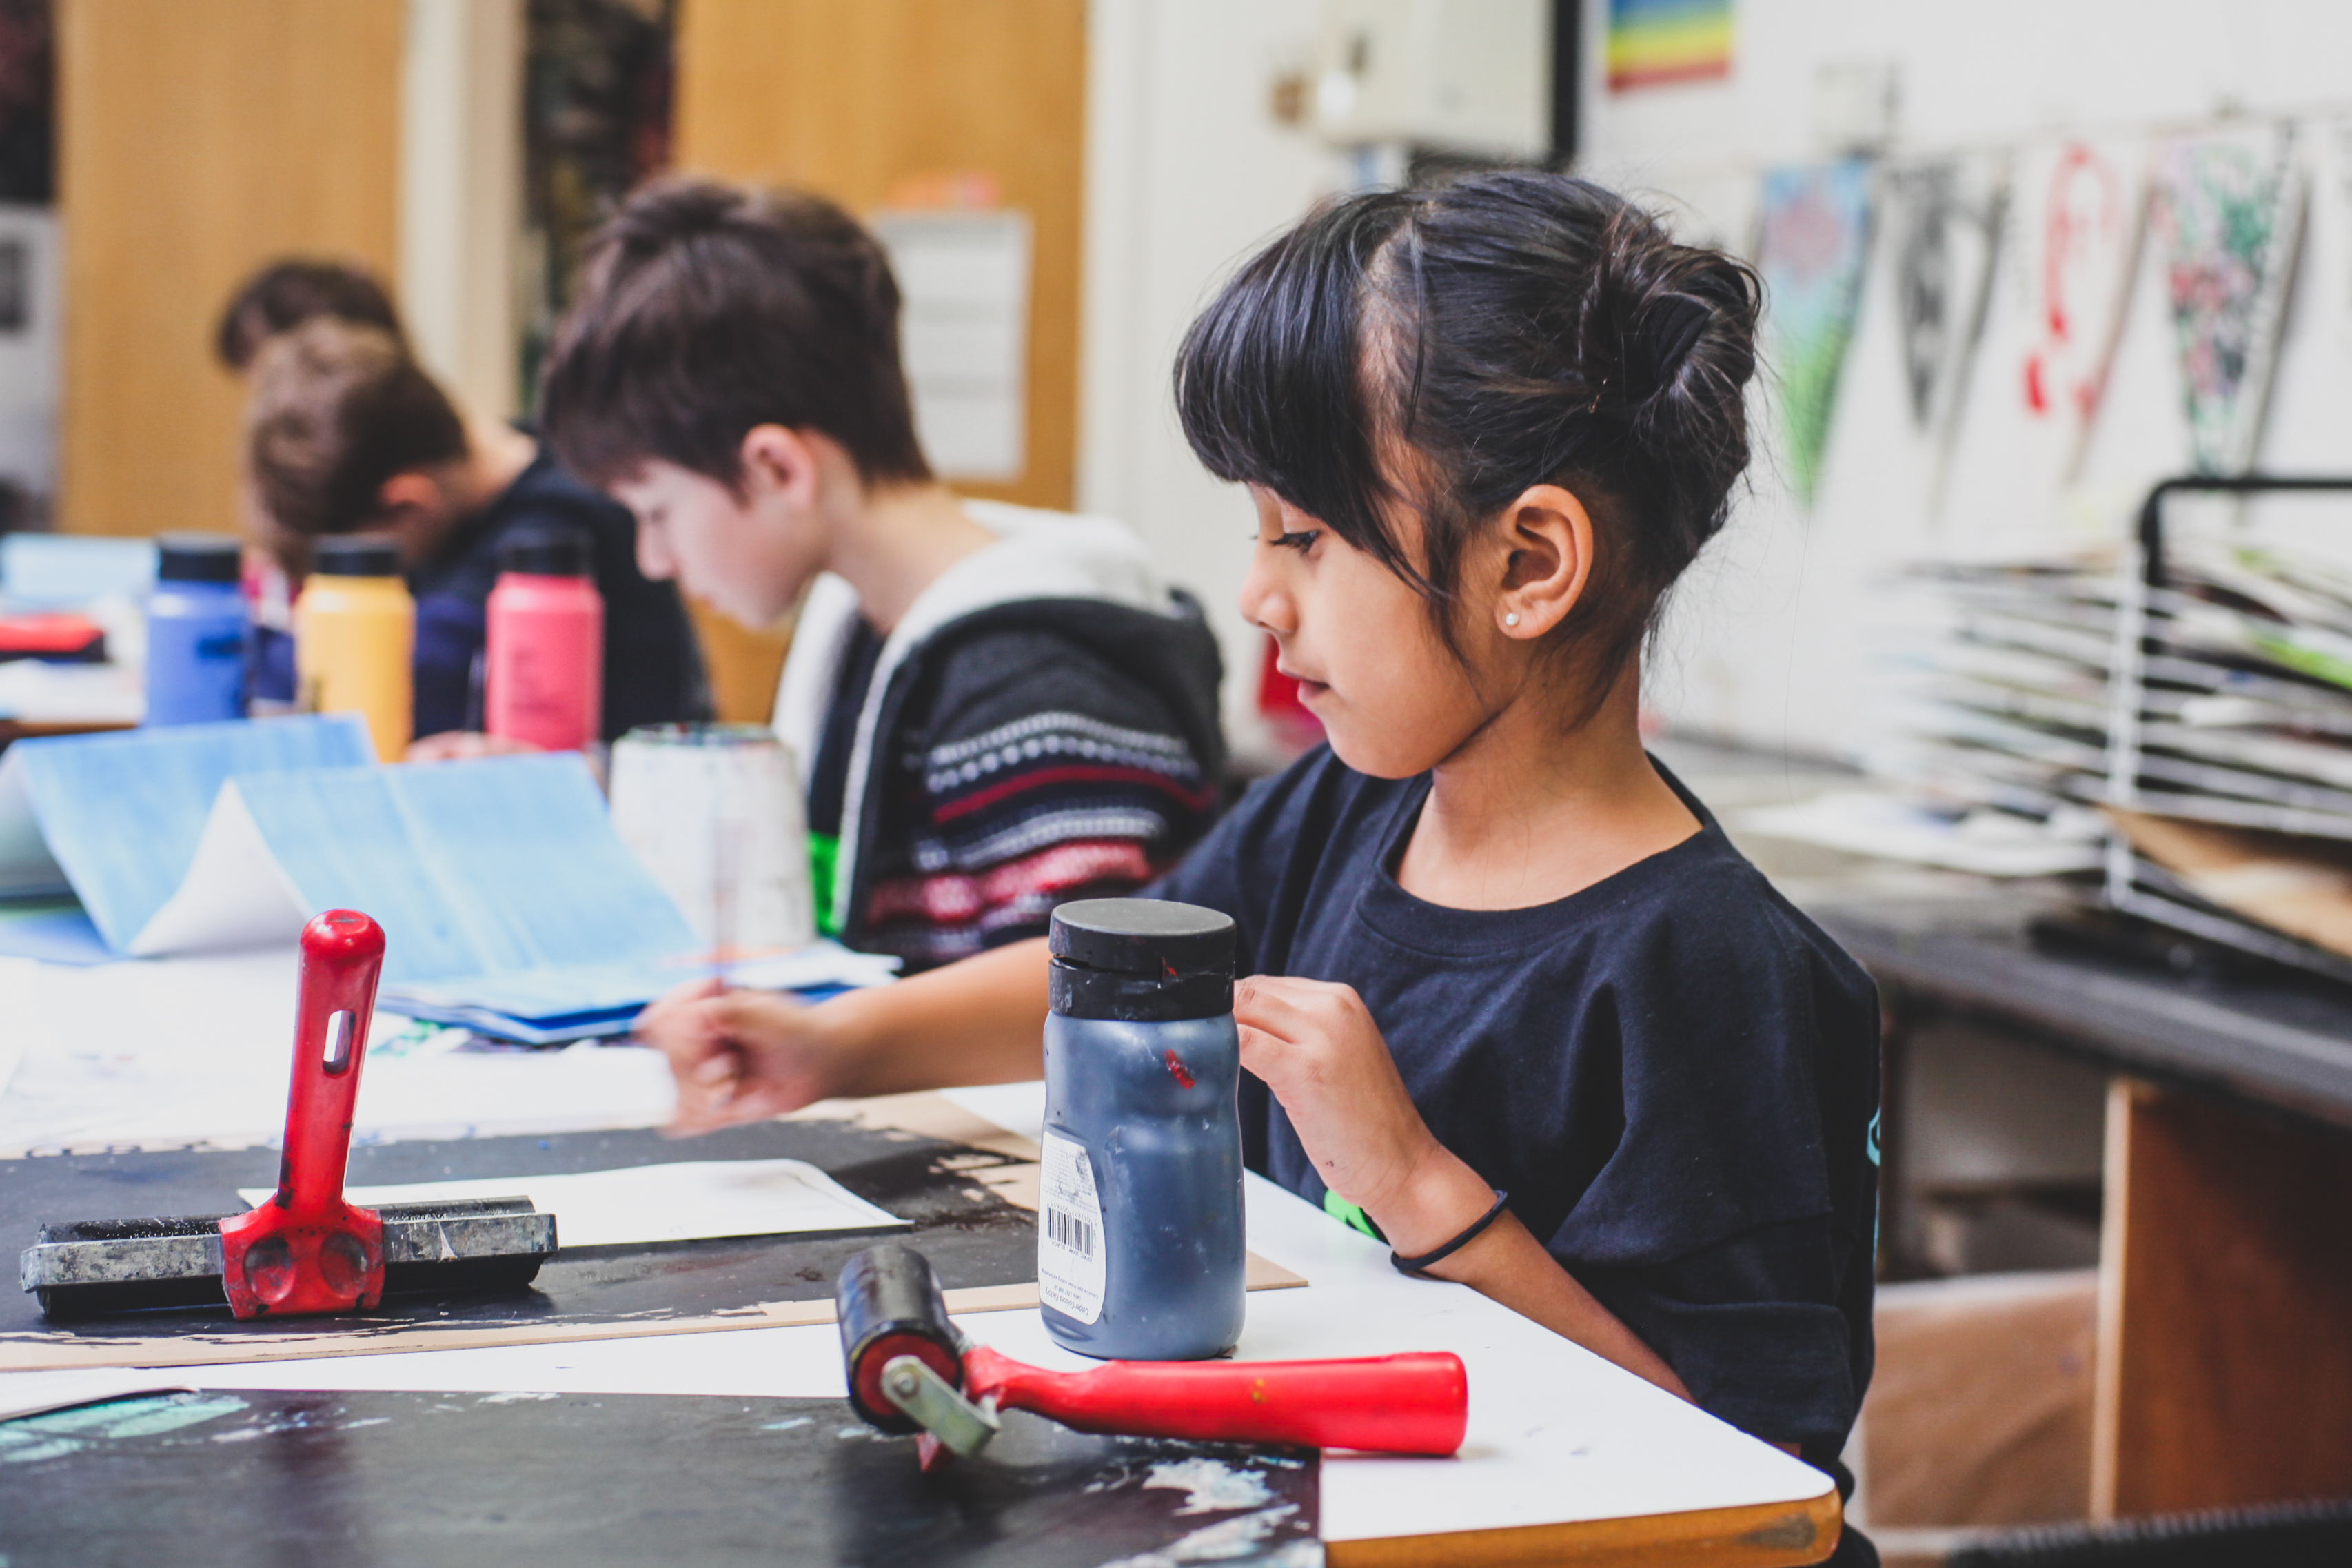 Young girl painting in class.